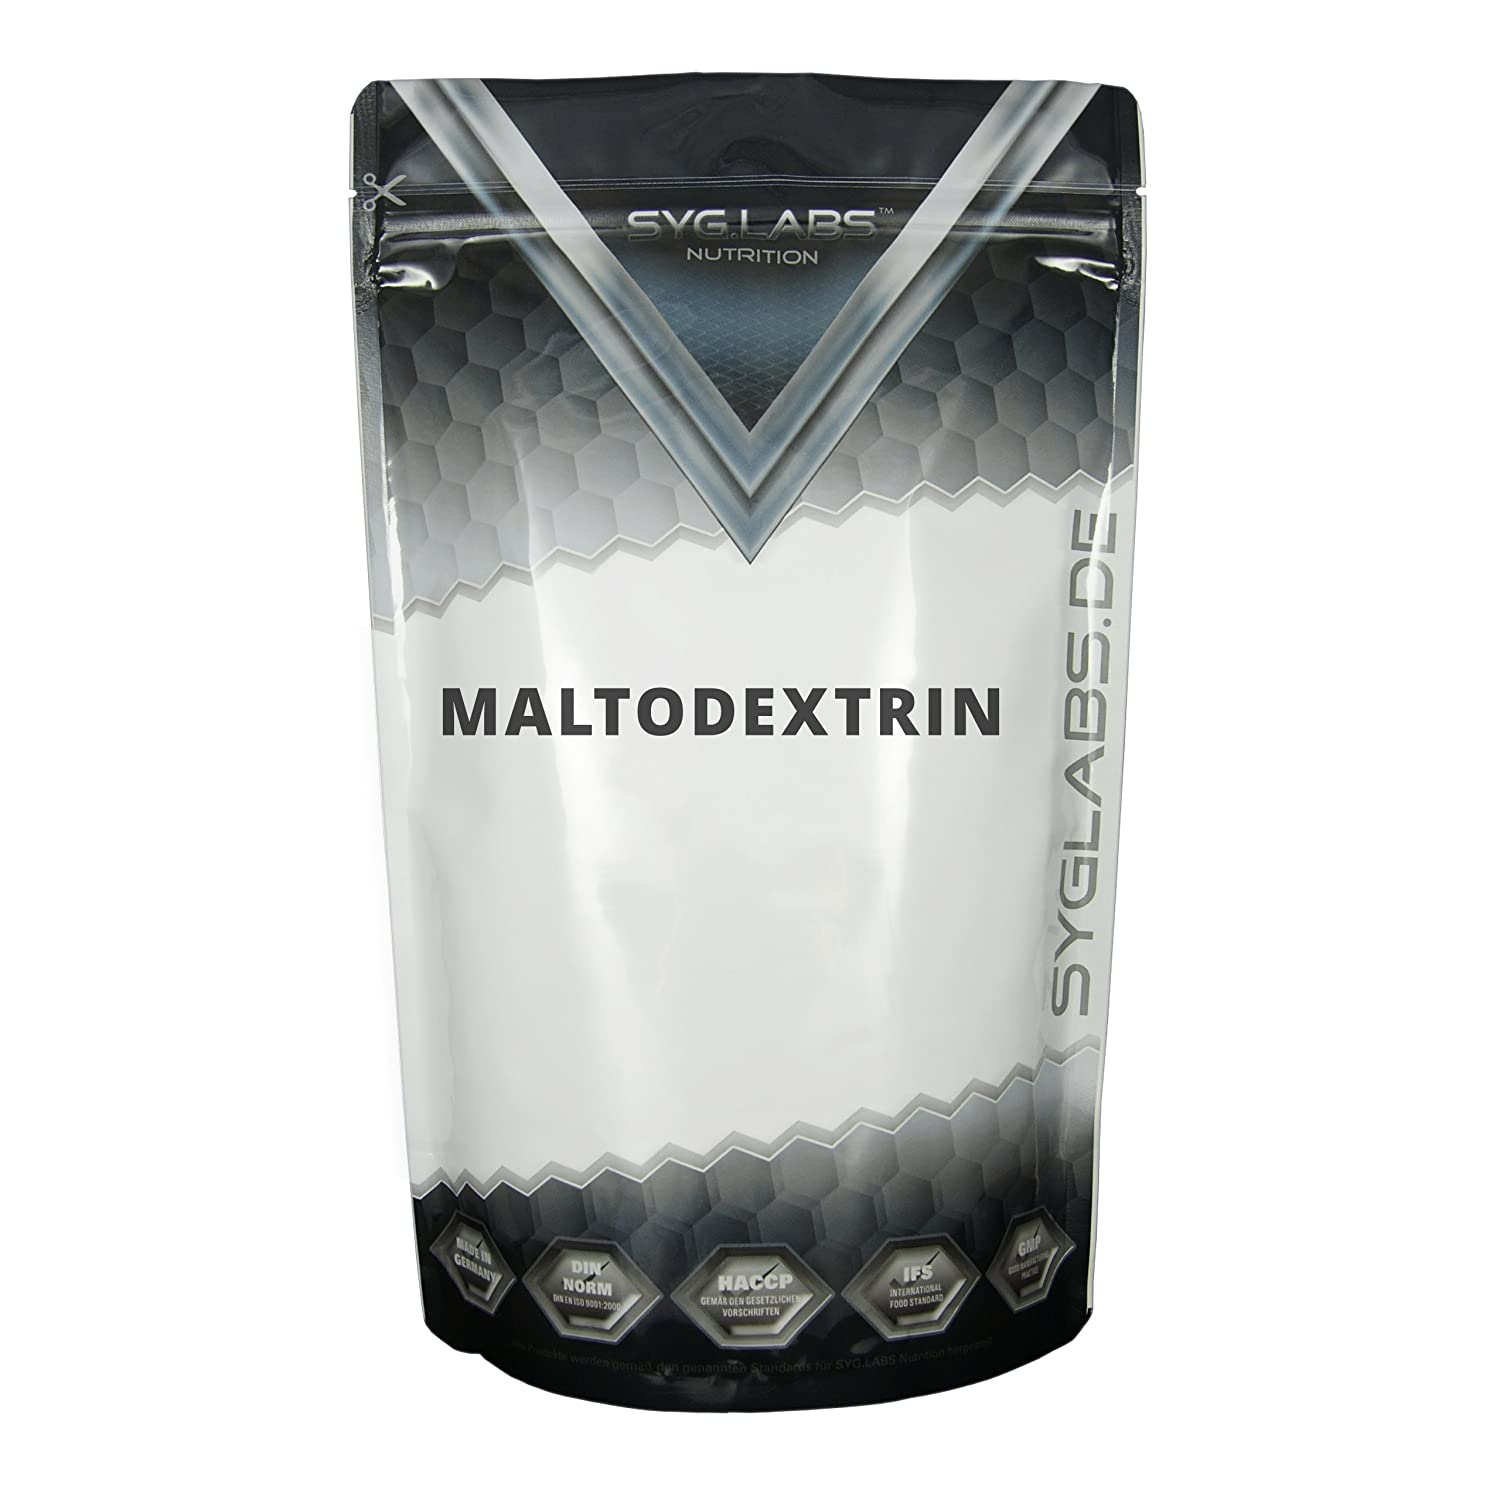 Syglabs Nutrition Maltodextrin Pulver - Neutral DE 19, 1er Pack (1 x 5 kg)